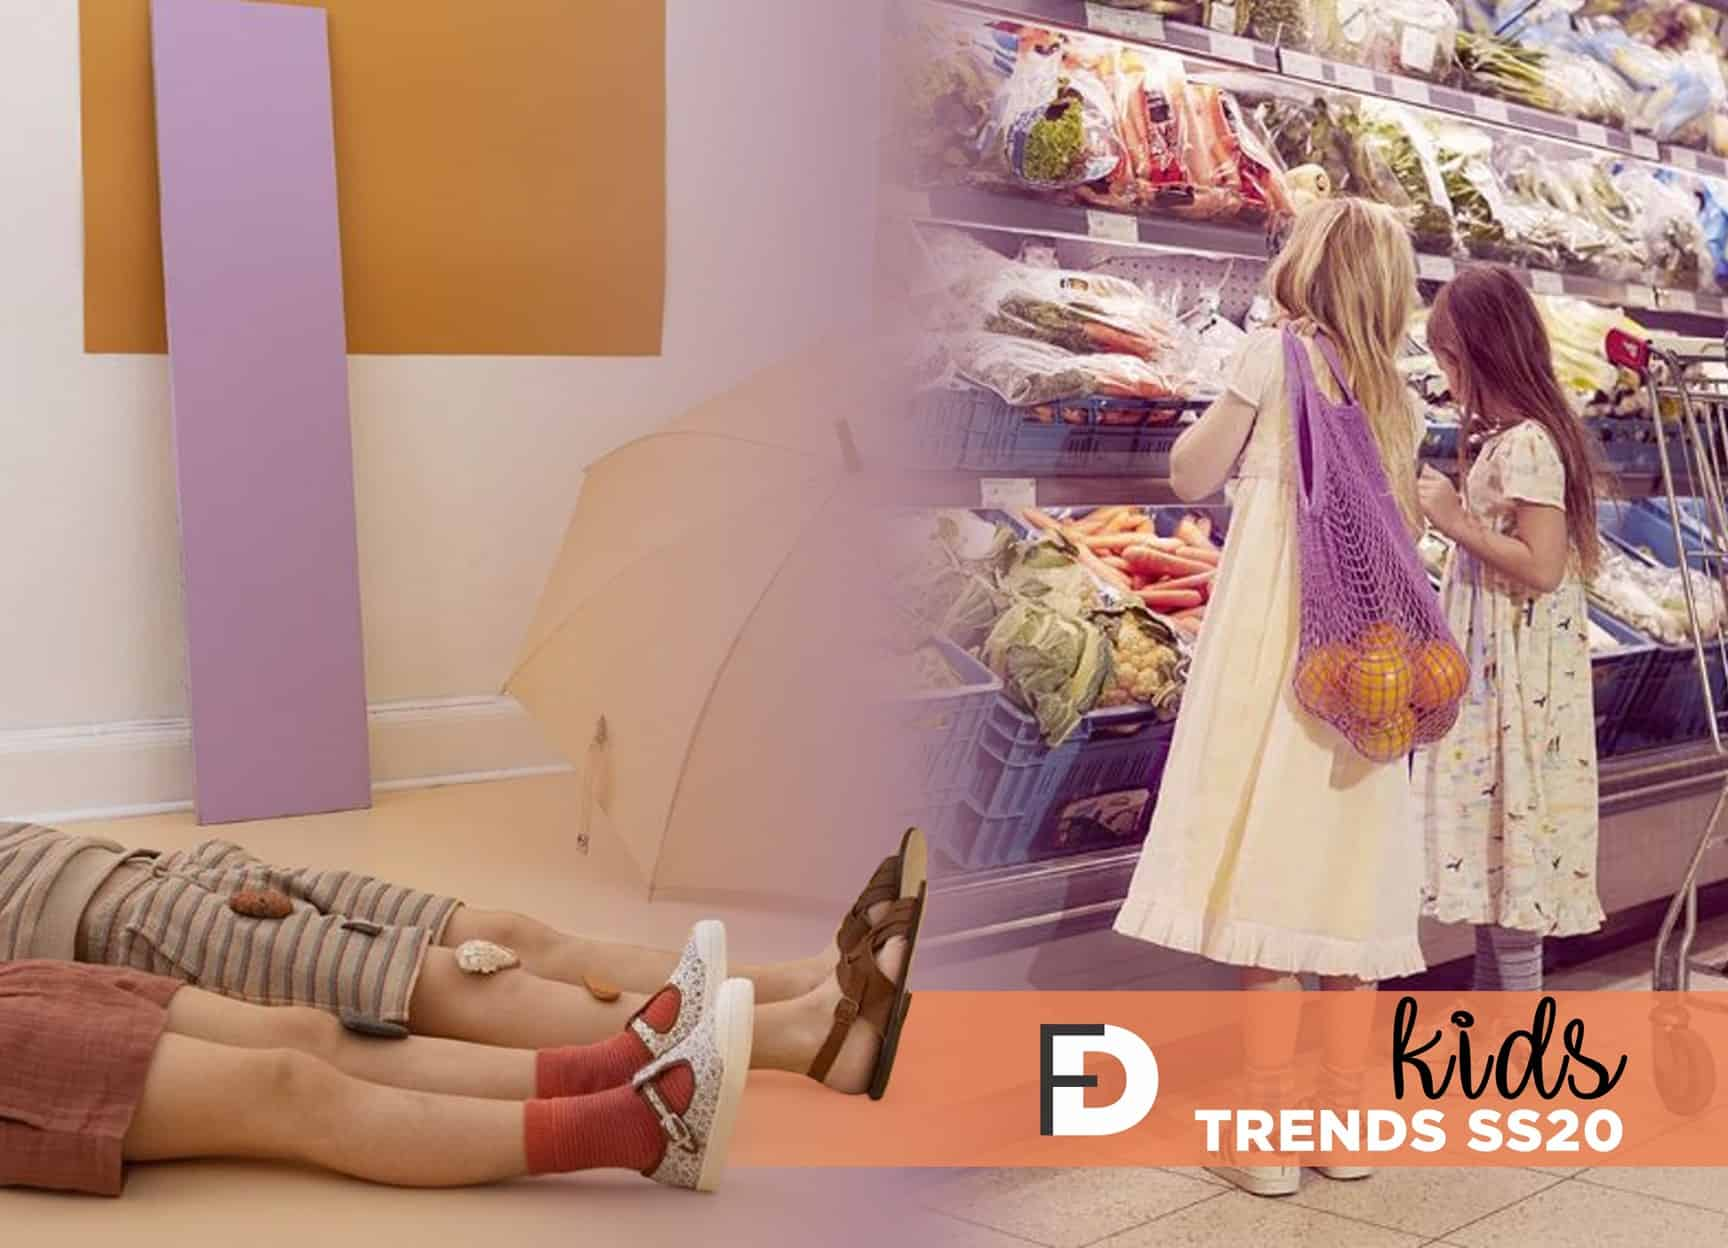 Kids ss20 trends footwear 1